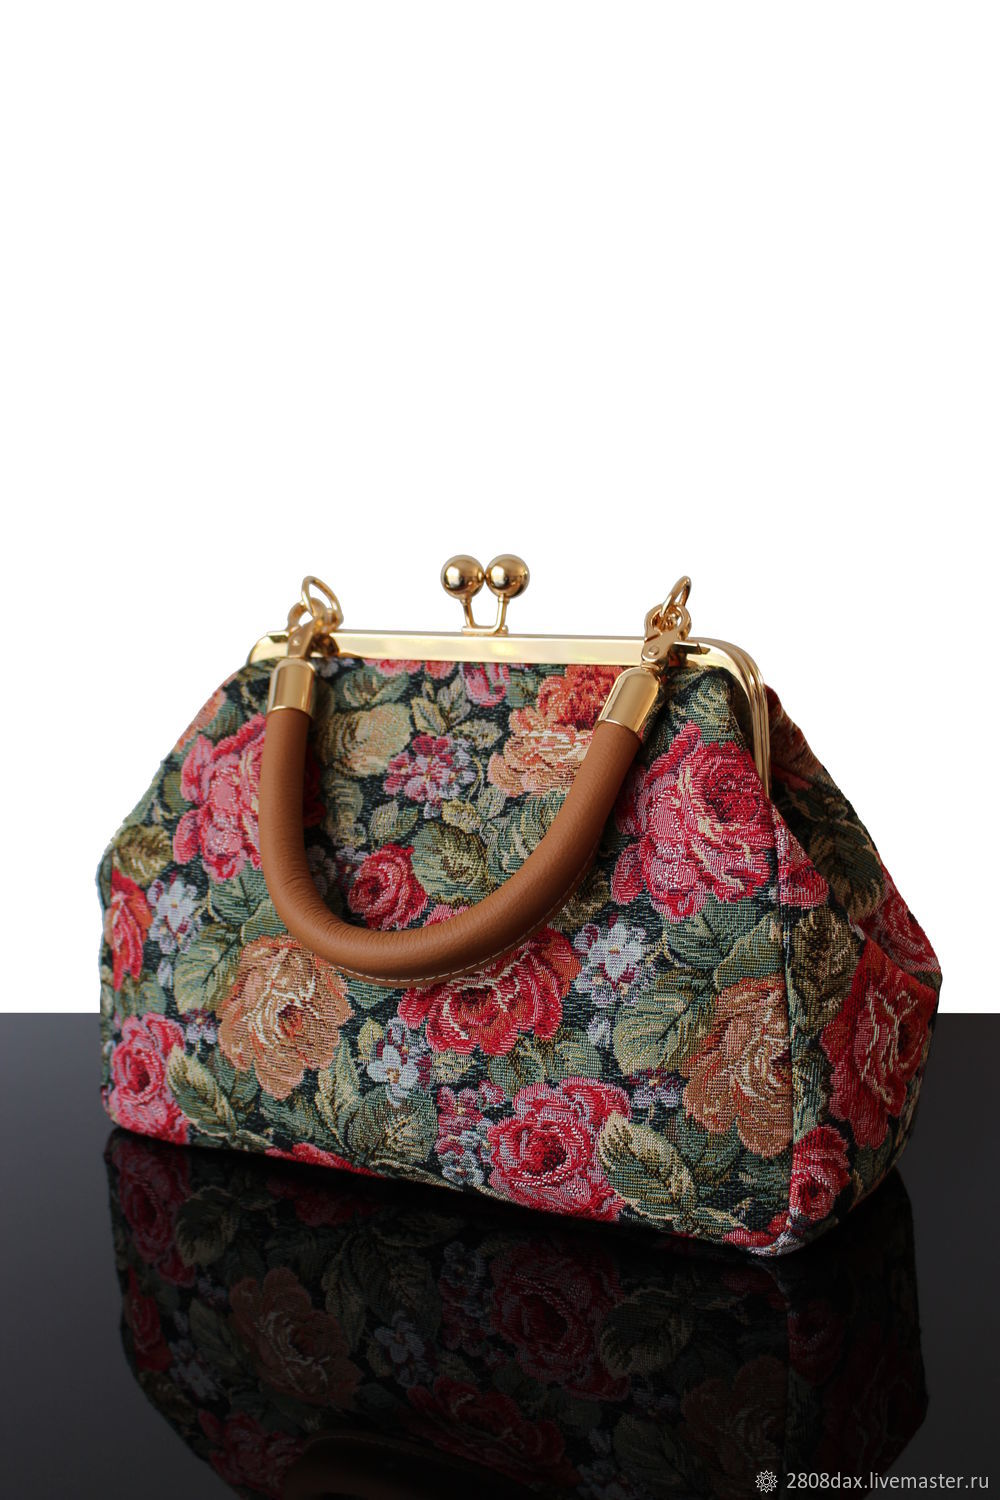 Bag with clasp: Women's Travel Bag Retro Vintage Roses, Tapestry, Clasp Bag, Bordeaux,  Фото №1